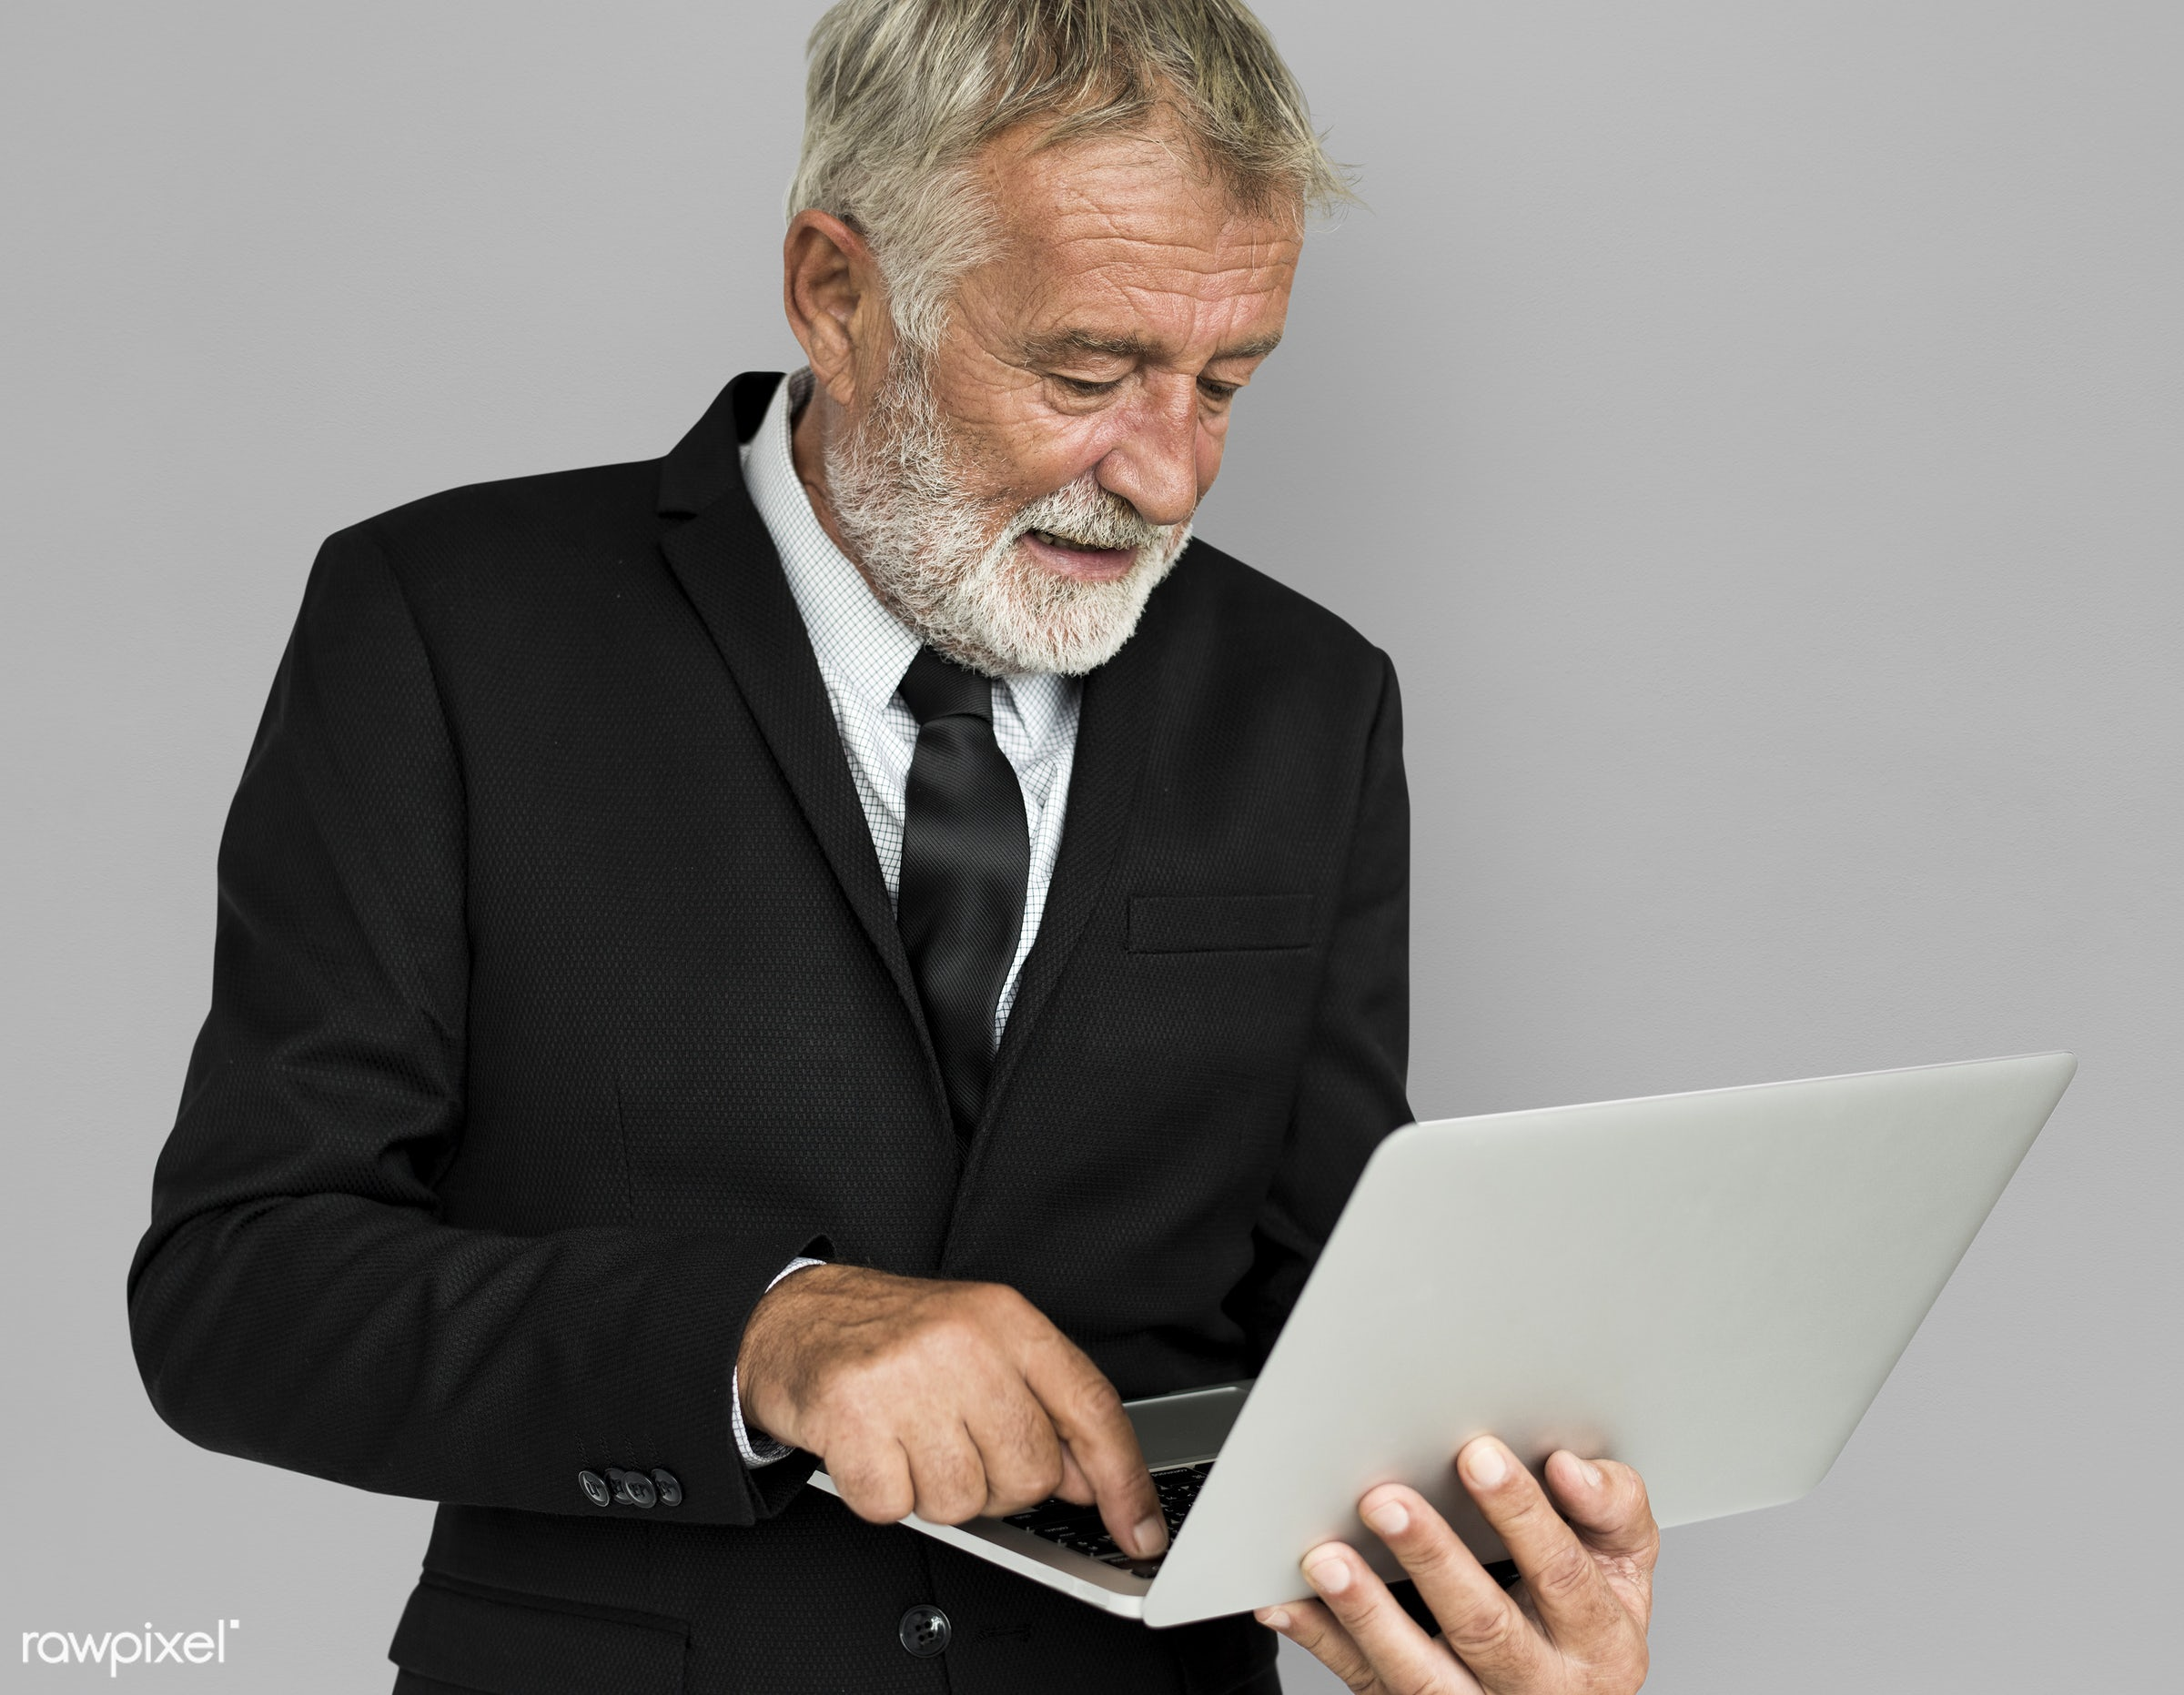 expression, studio, person, technology, business wear, people, business, caucasian, happy, laptop, working, smile, positive...